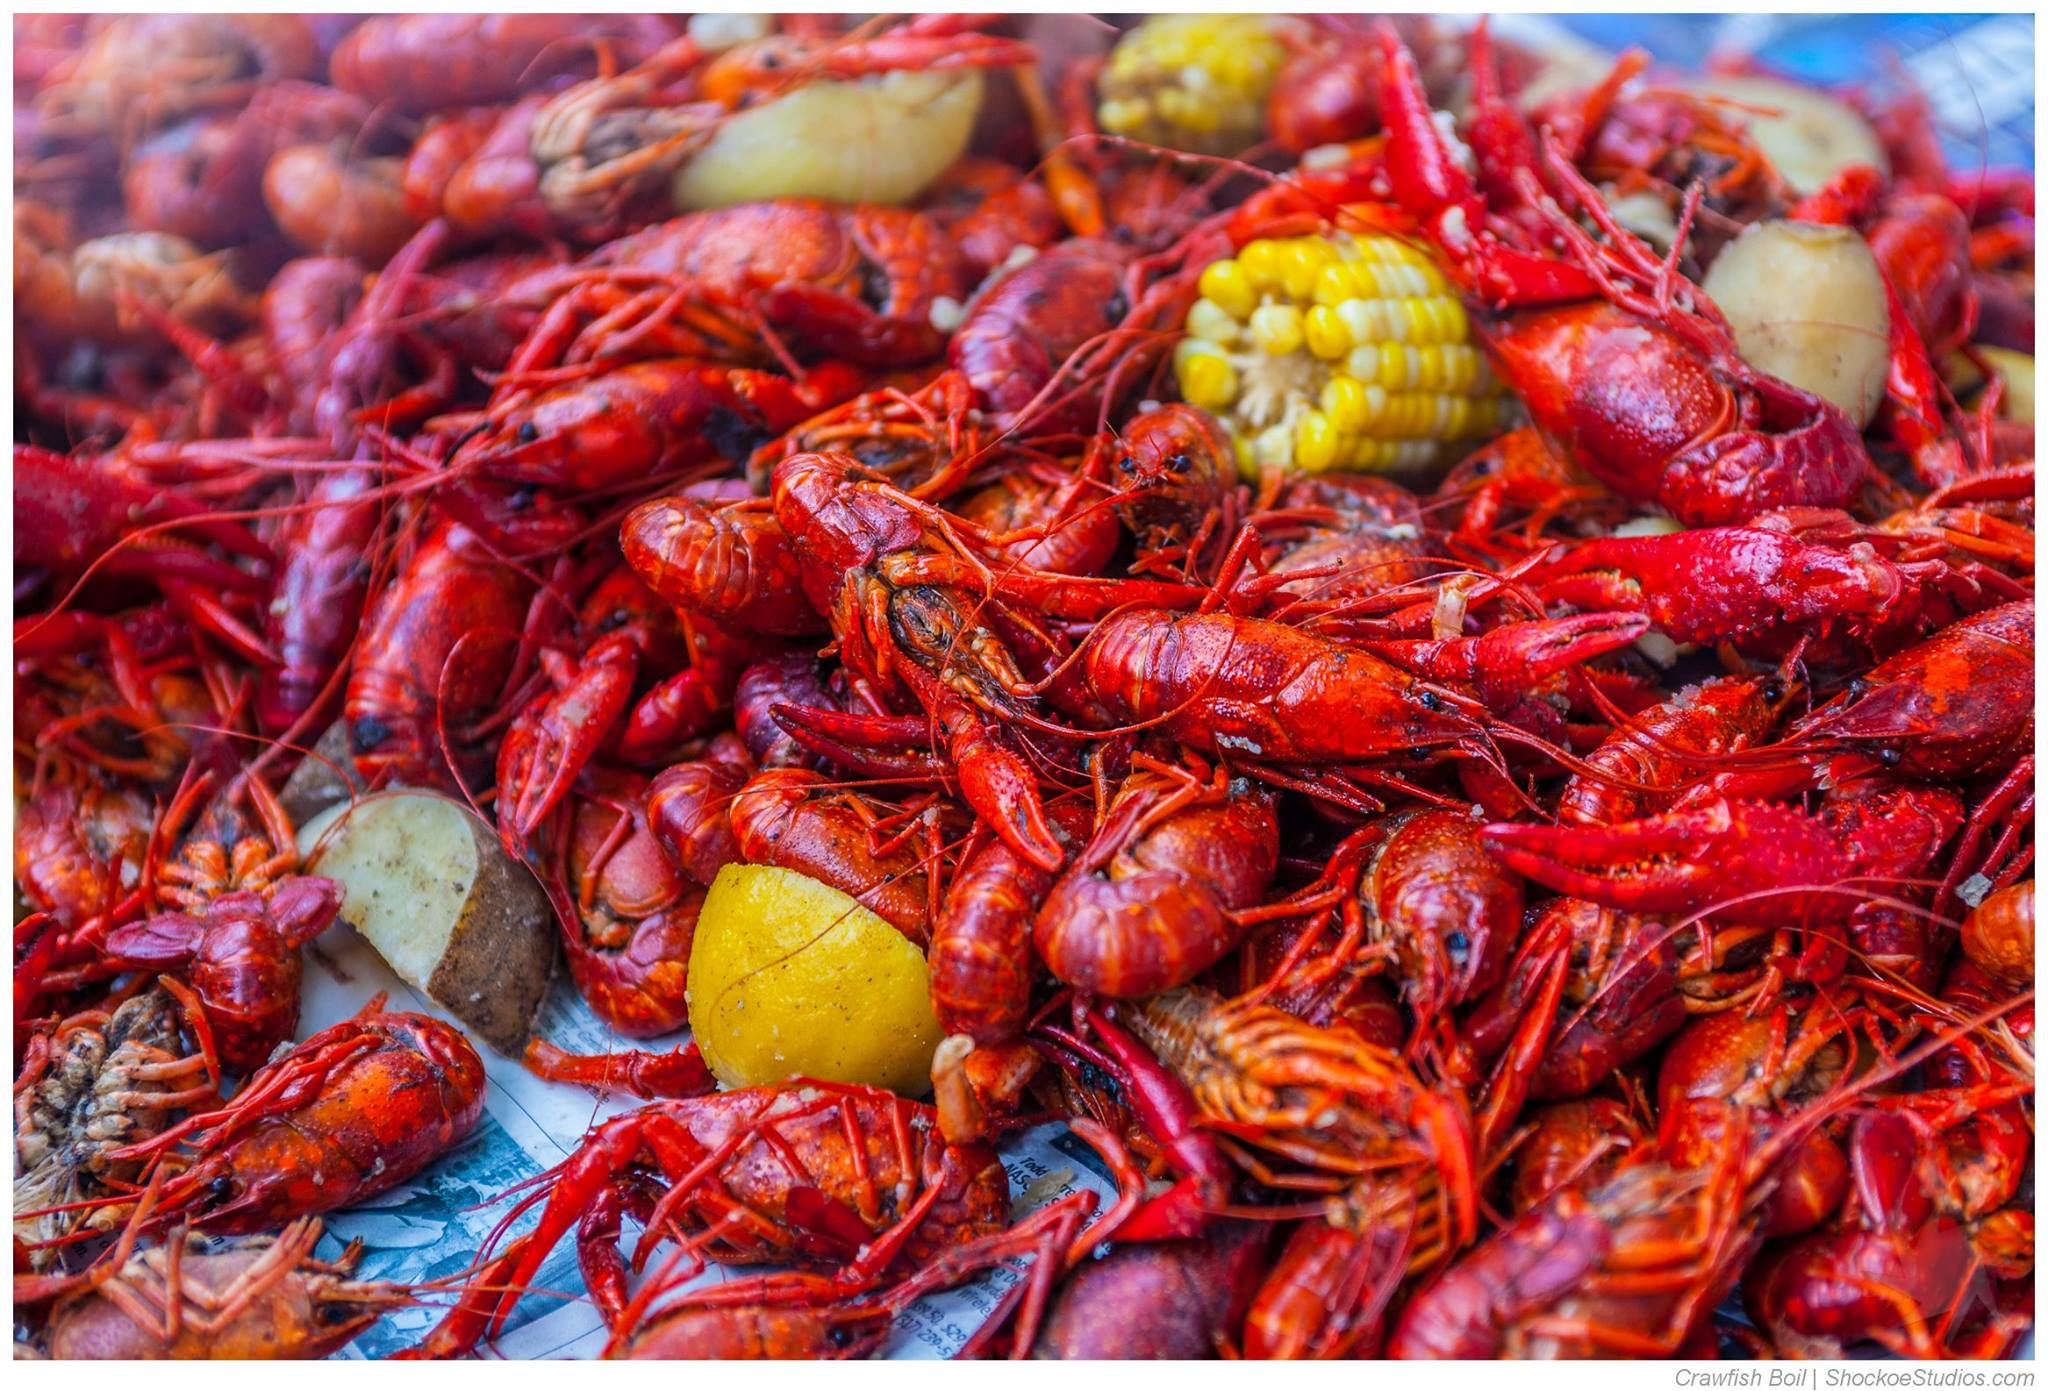 Crawfish Boil on 6/22